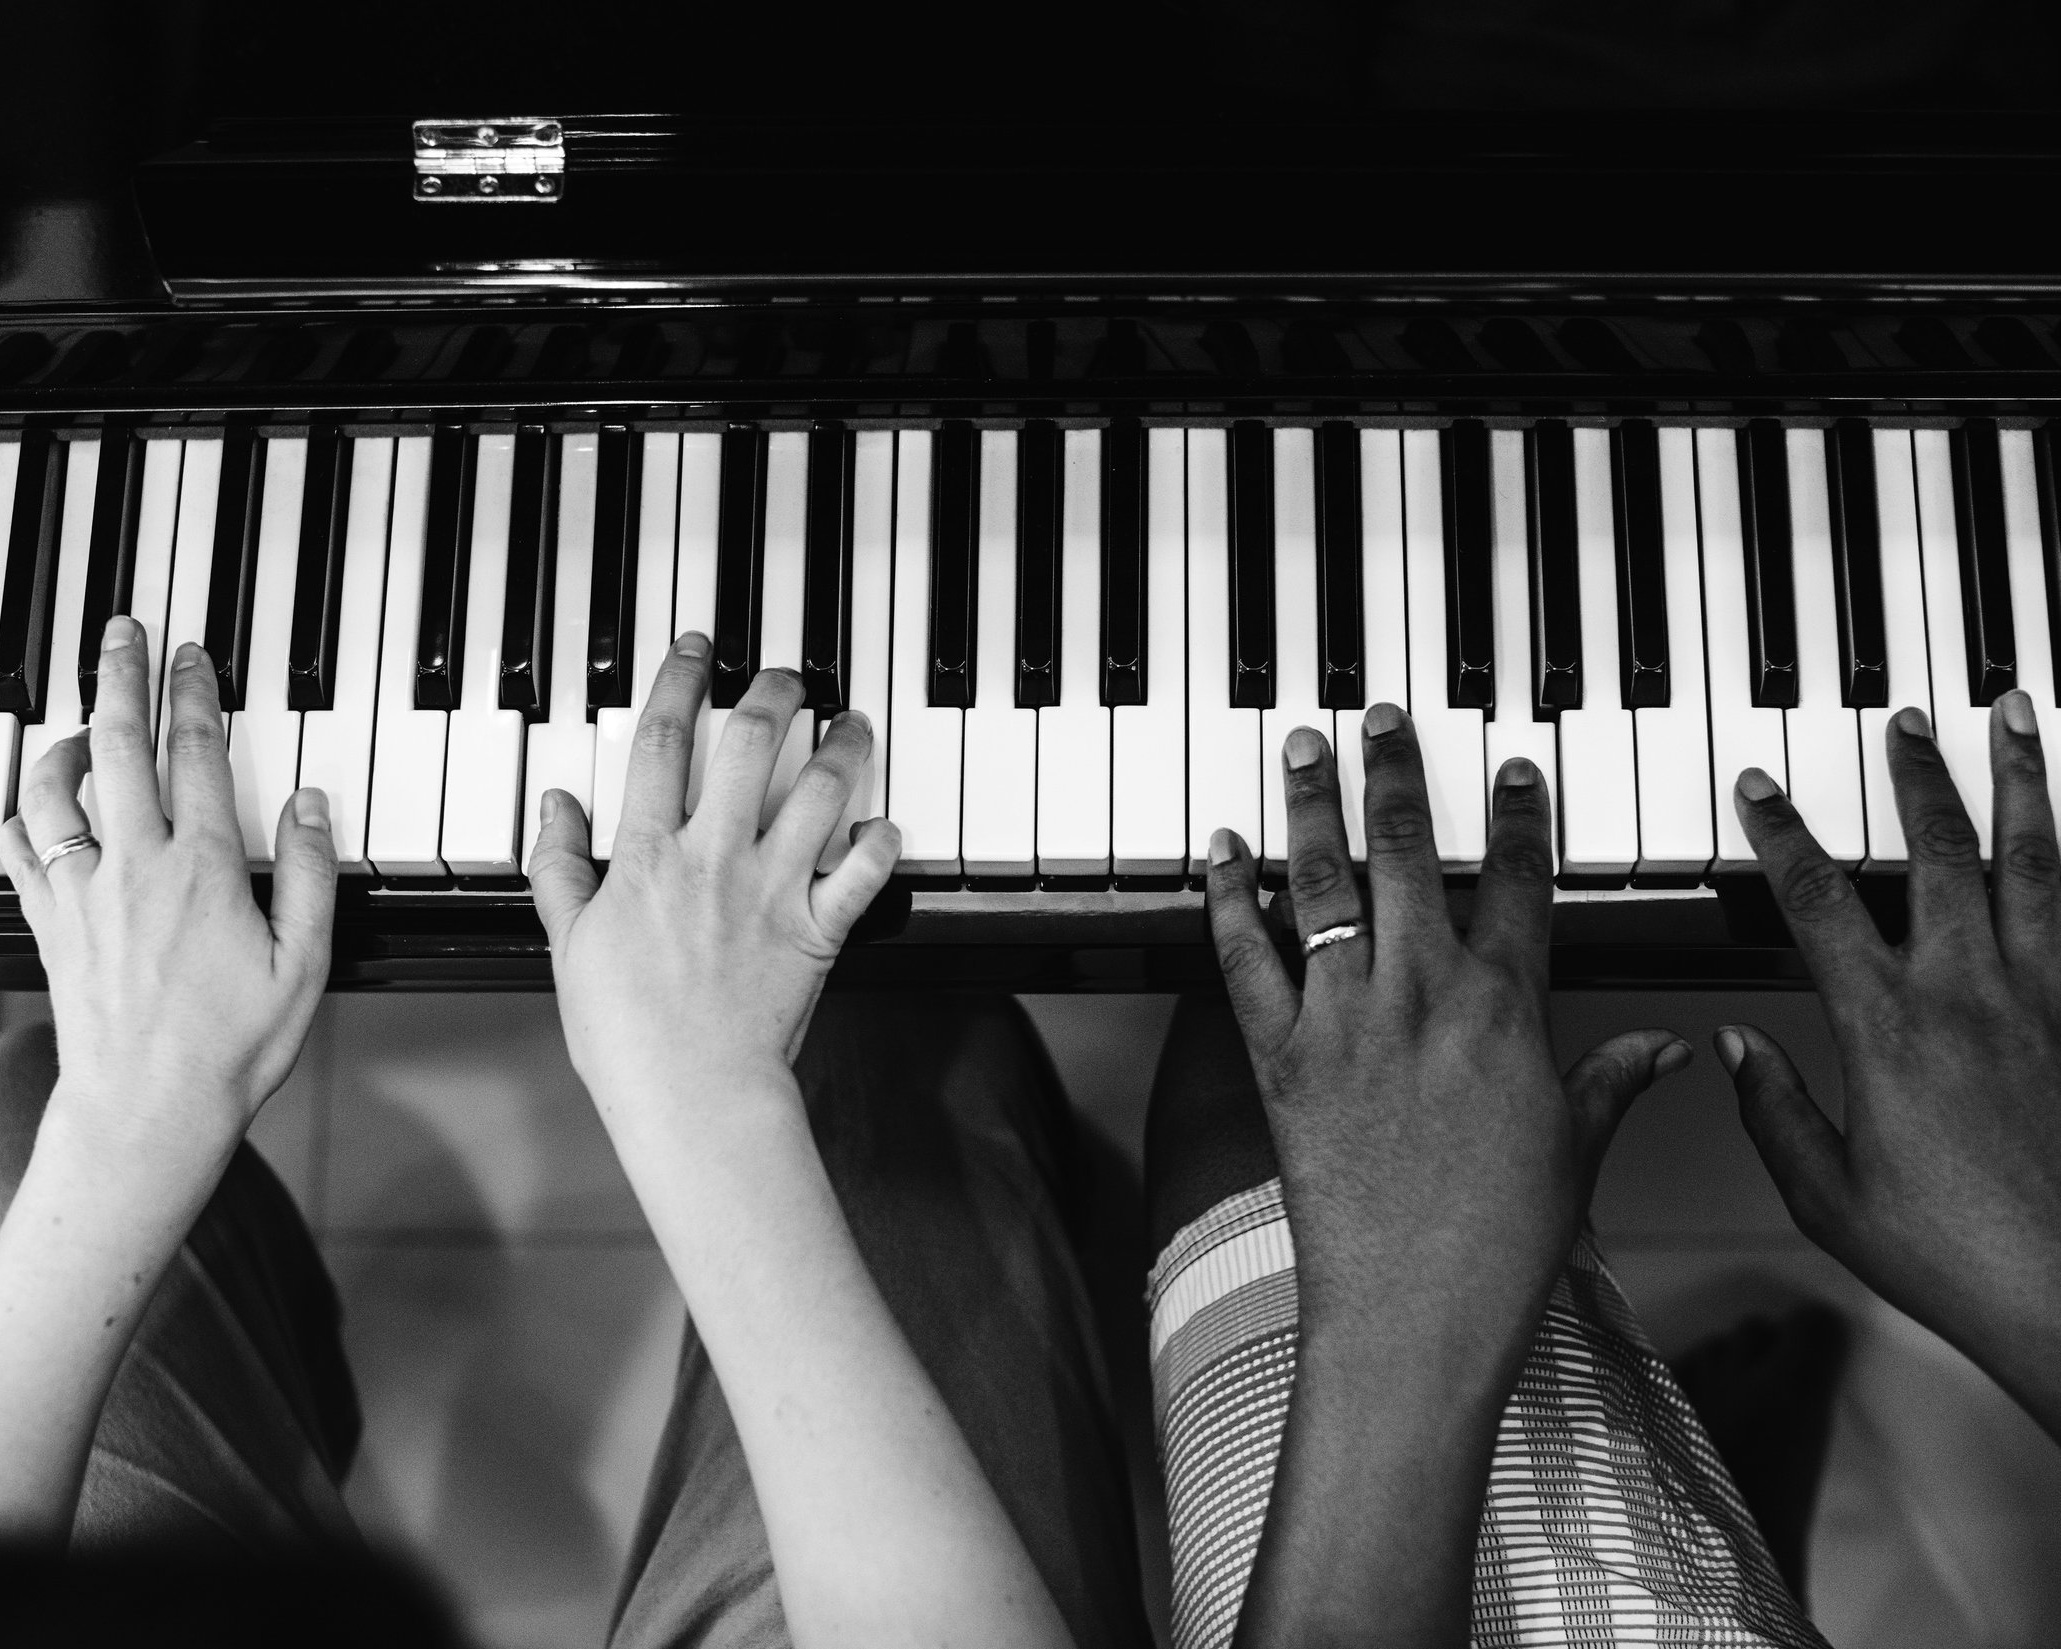 introductory lessons - Find out about how you can begin your musical journey with one on one experience from a professional musician.